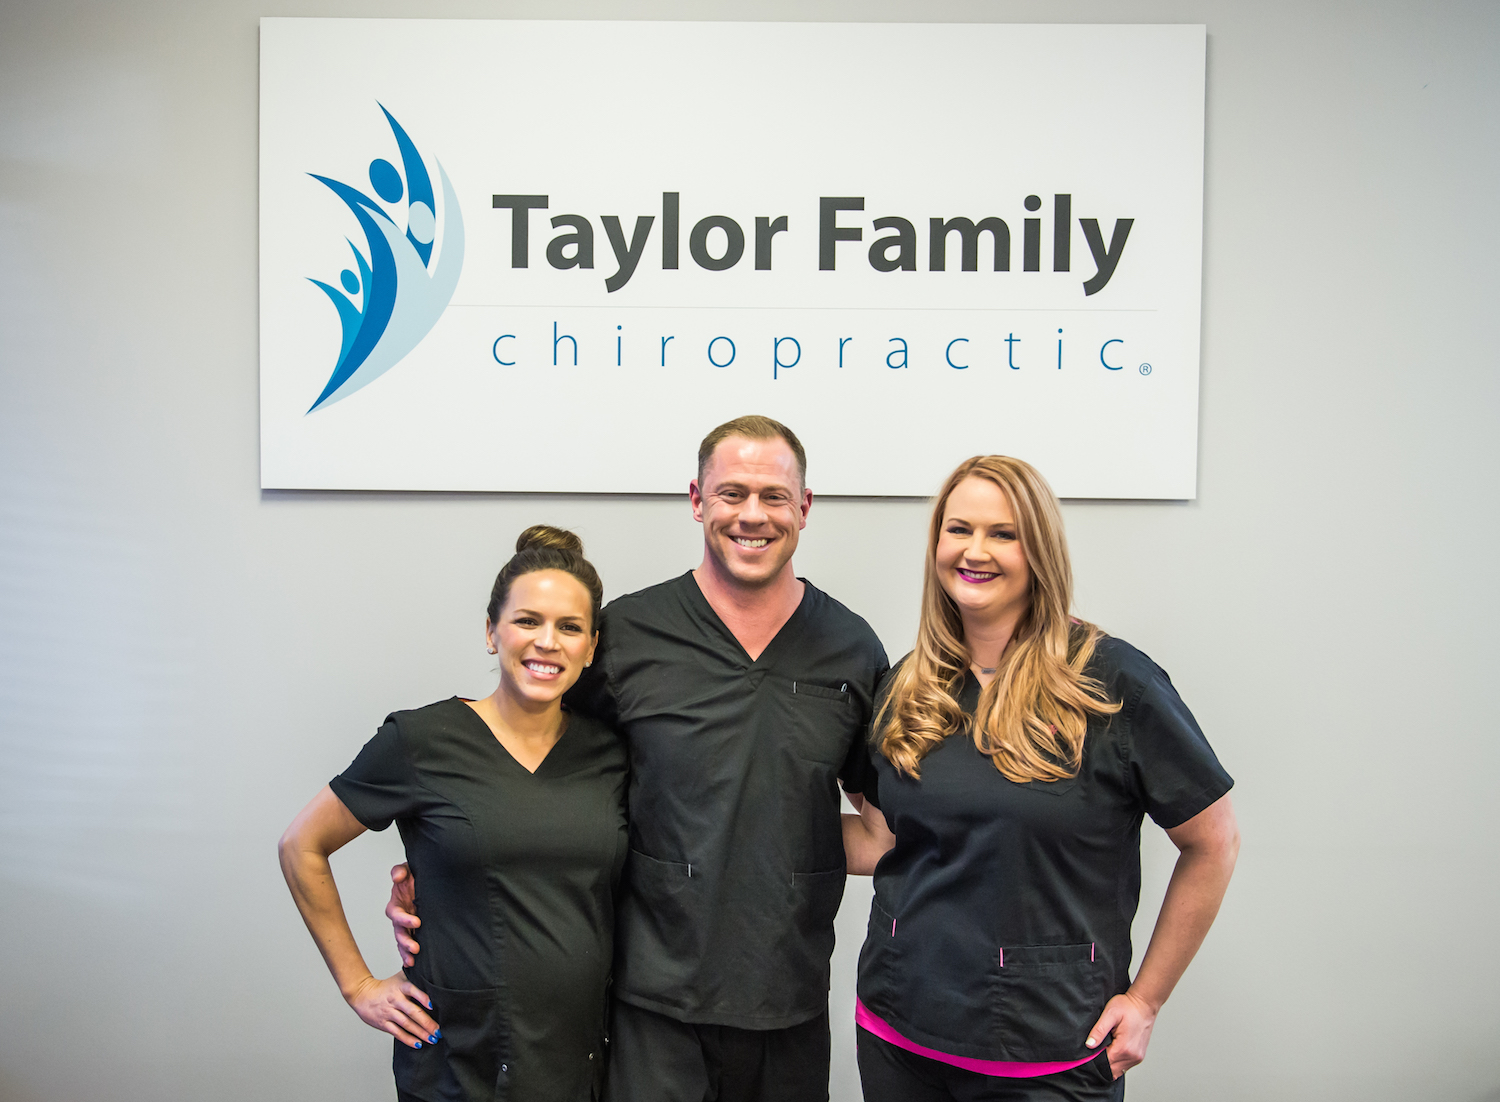 taylor-family-chiropractic